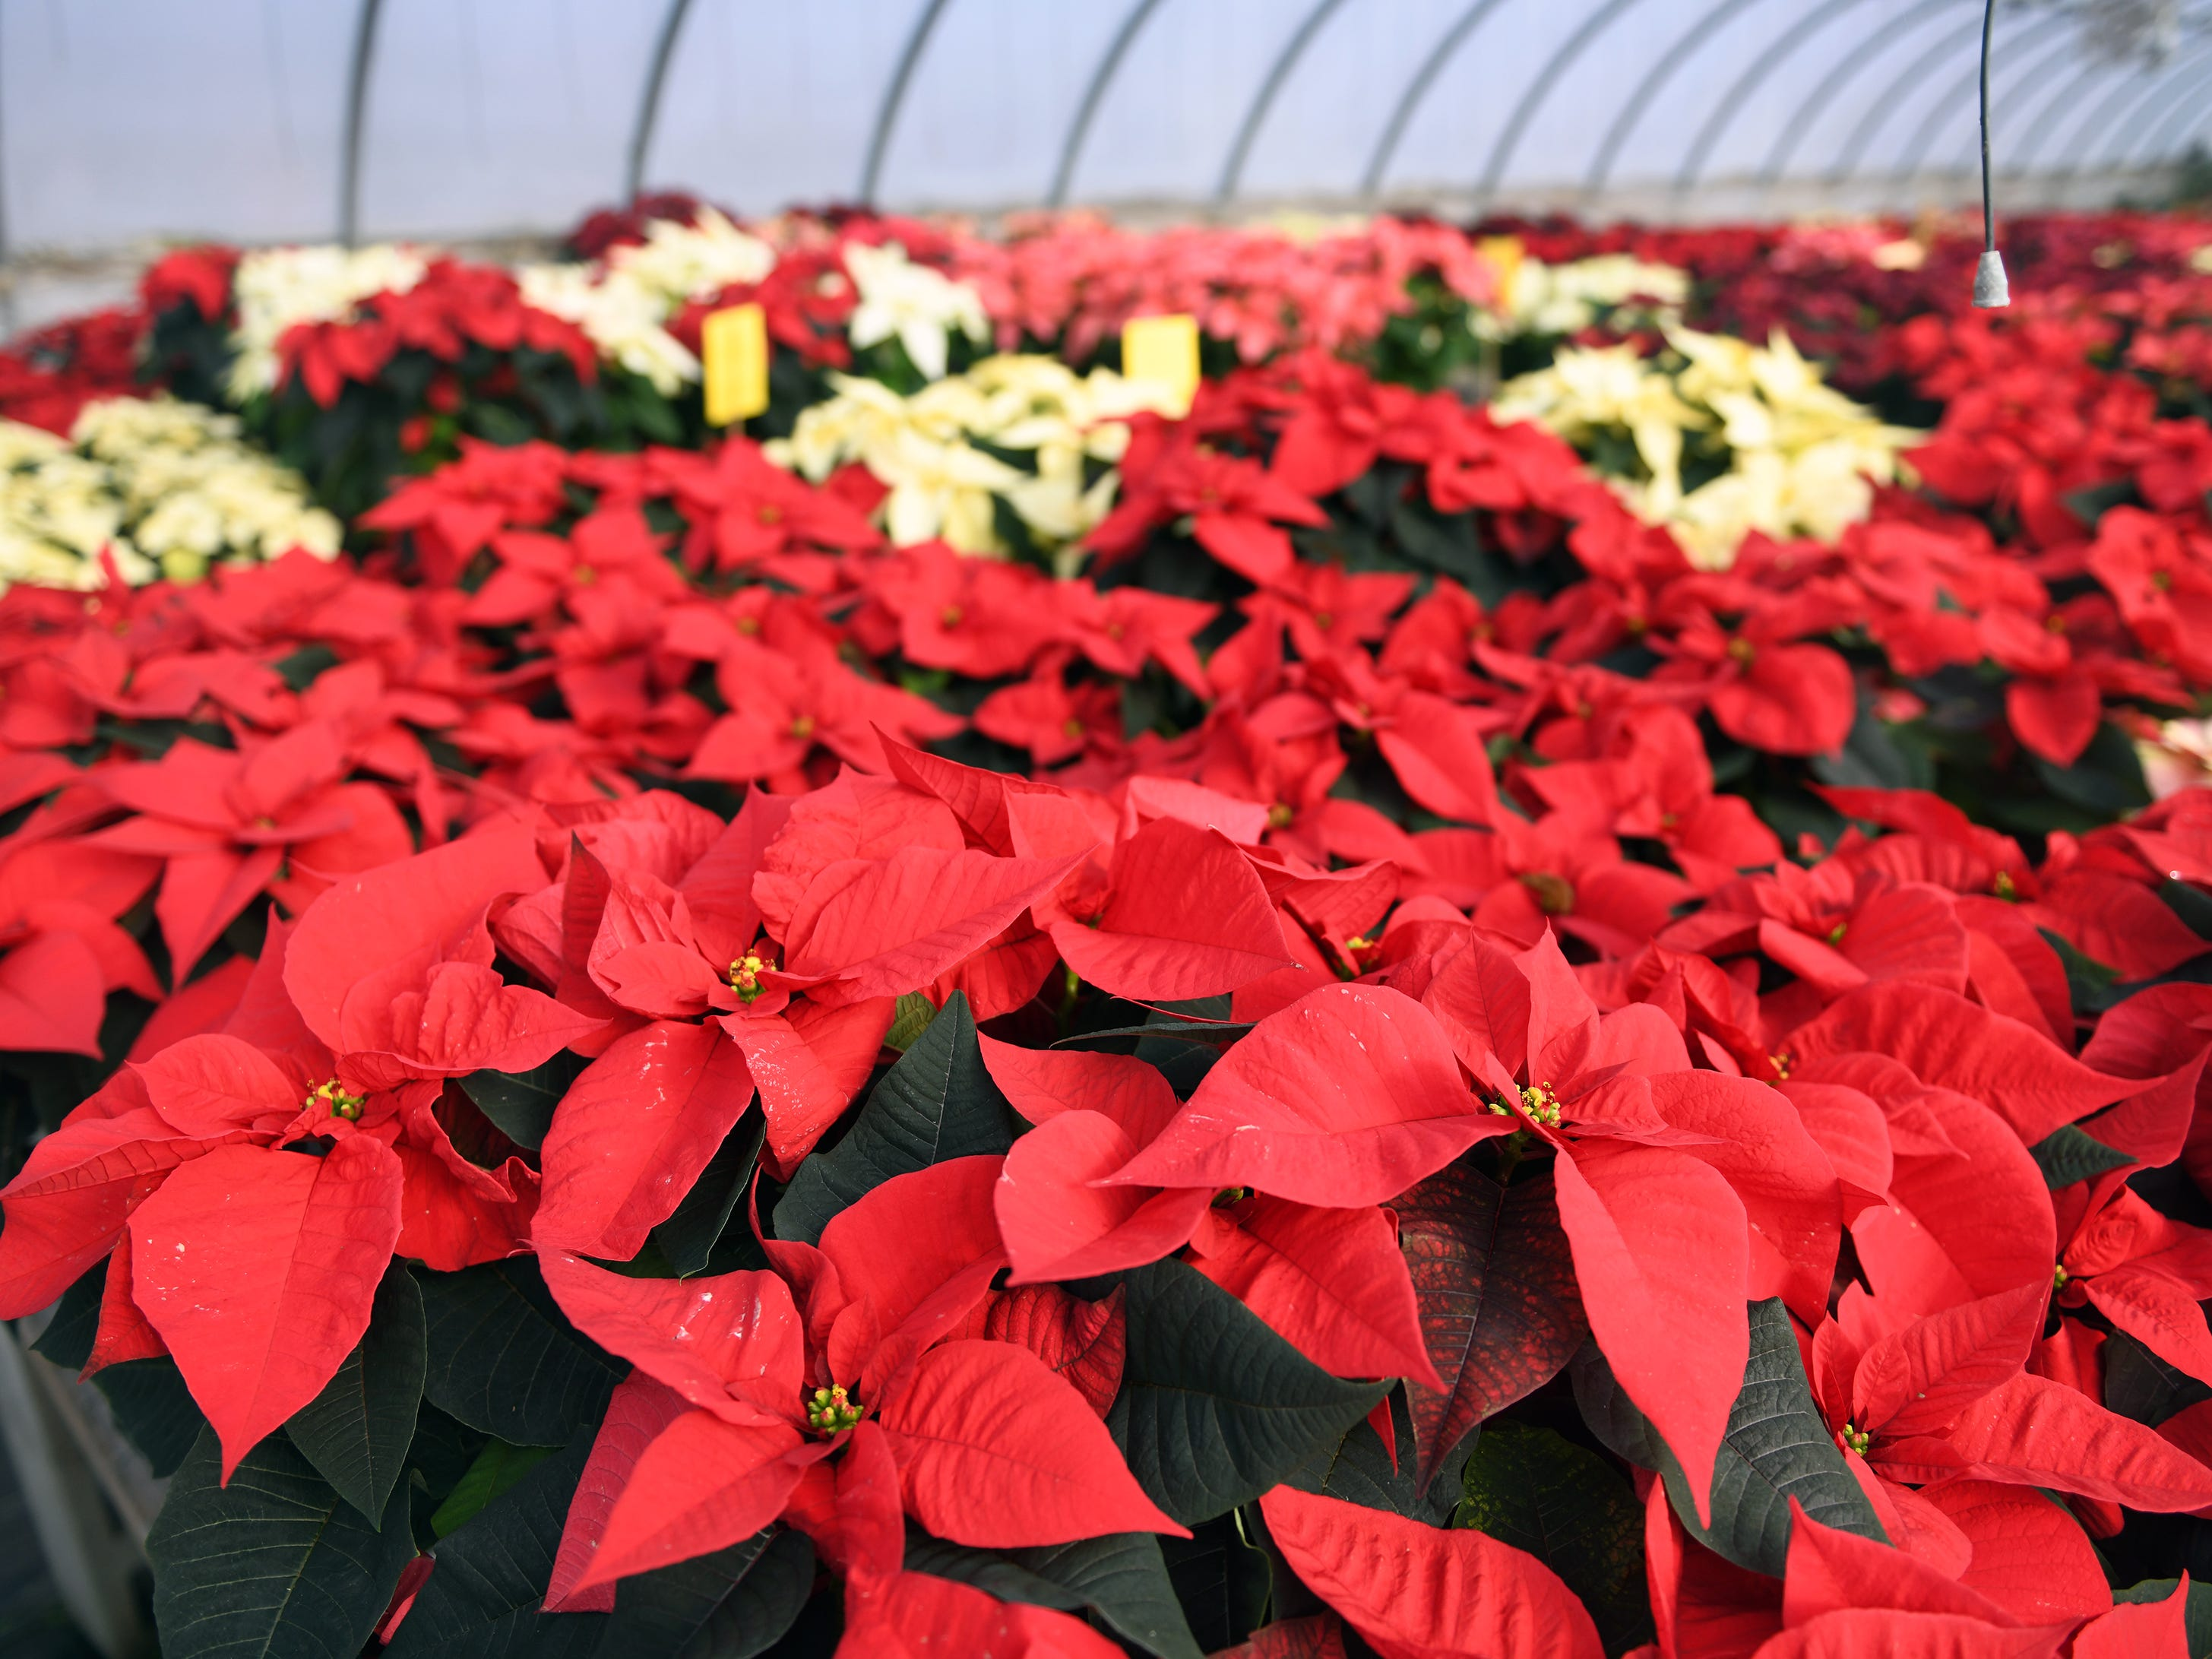 Tim and Patty Huffman of Huffman Farms in Vineland begin to grow poinsettias in July so they are ready for the Christmas season. Monday, December 10, 2018.